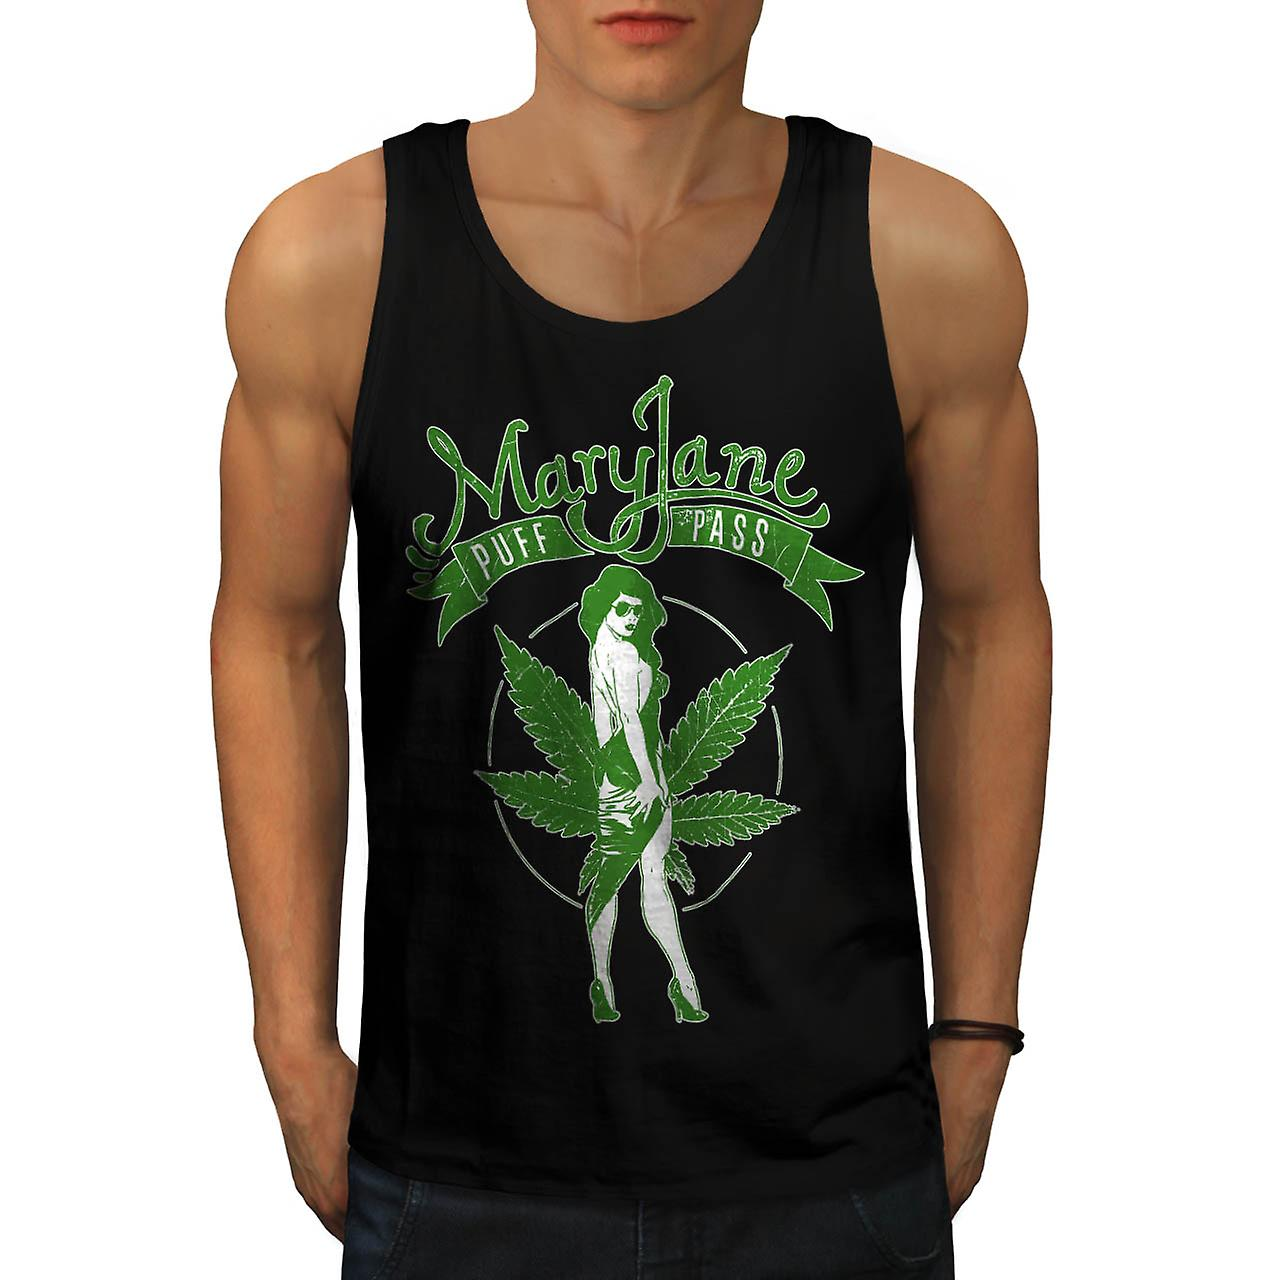 Onkruid Puff Pass Dope Mary Jane mannen Tank Top zwart | Wellcoda